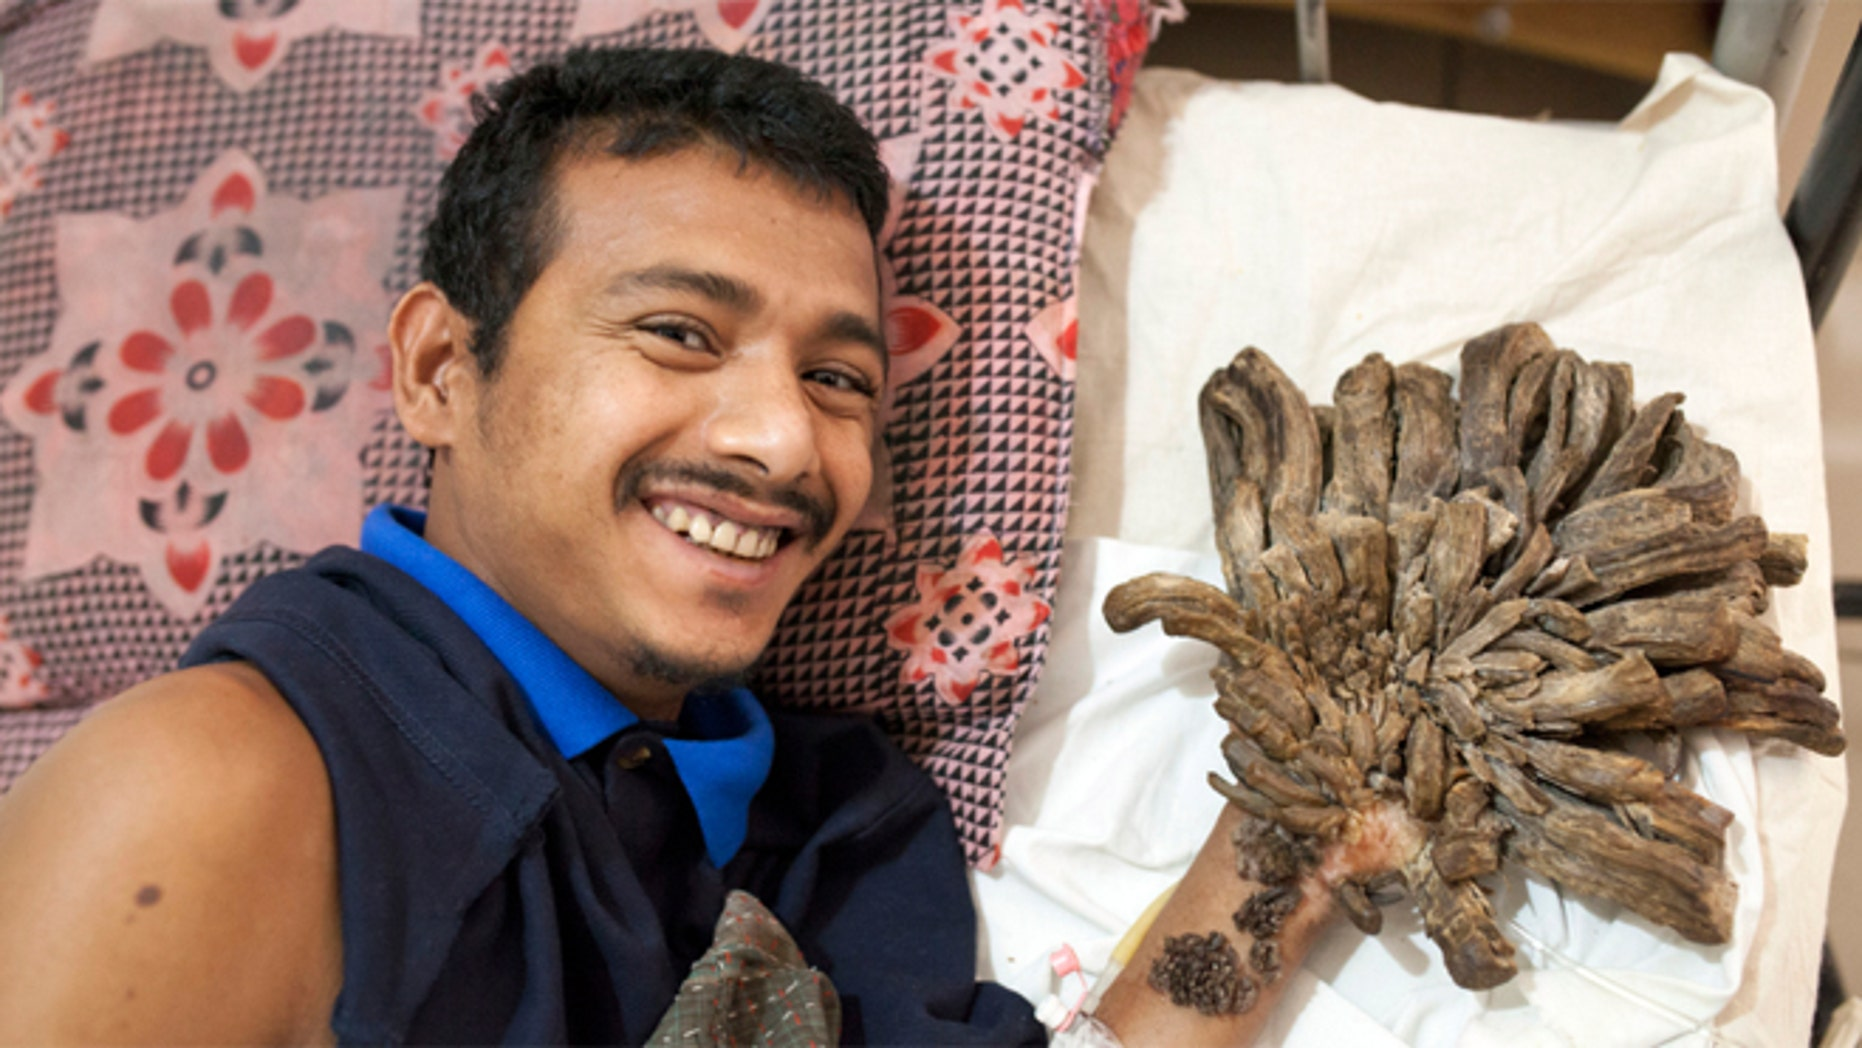 Abul Bjandar had growths on his hands and legs weighing up to 11 pounds.